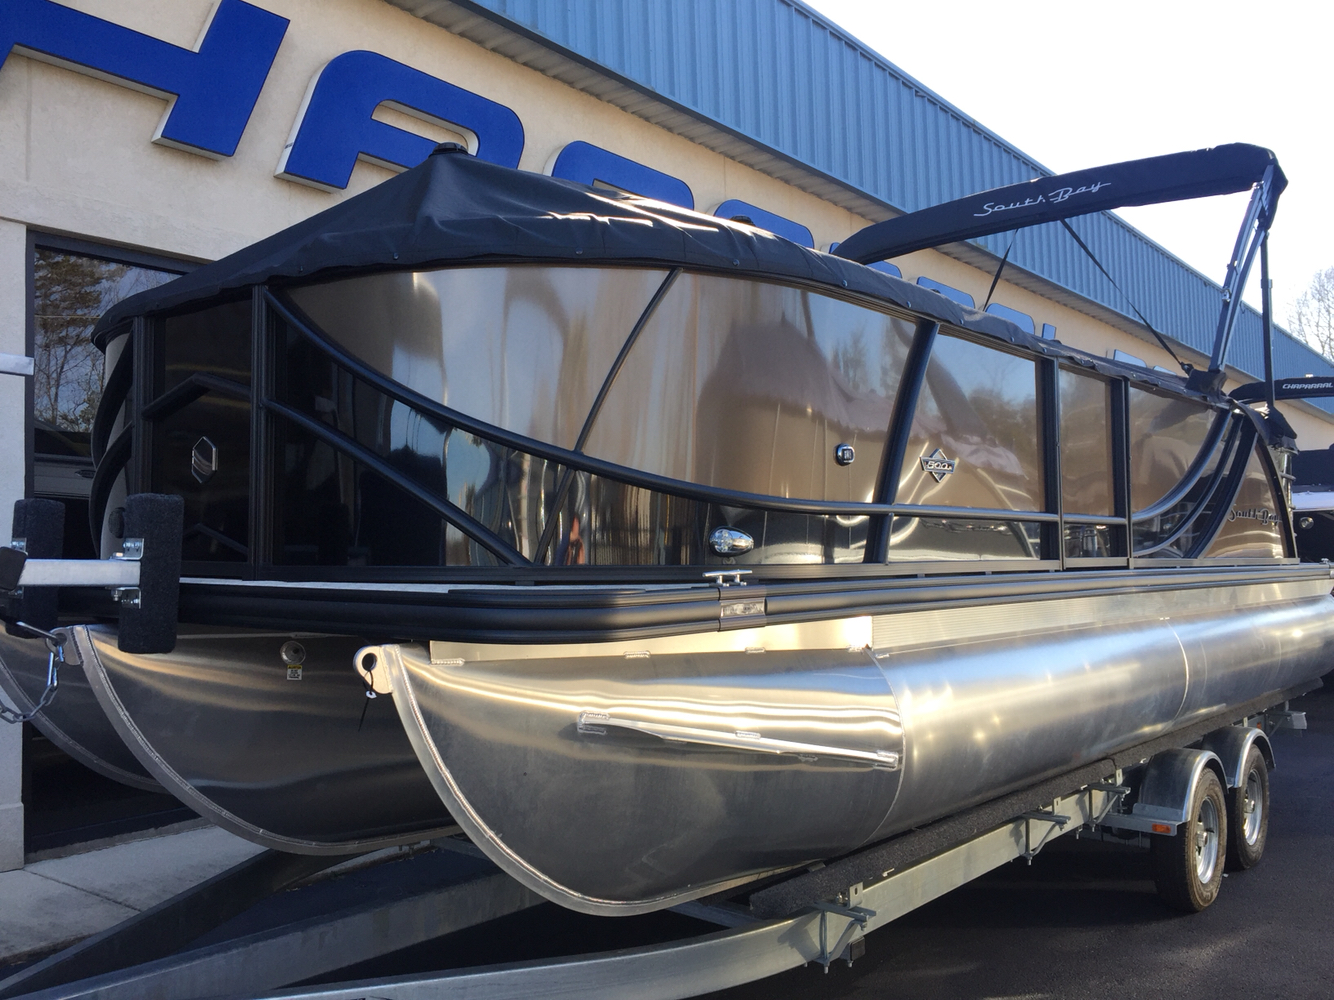 South Bay 500 Series 523RS 3.0